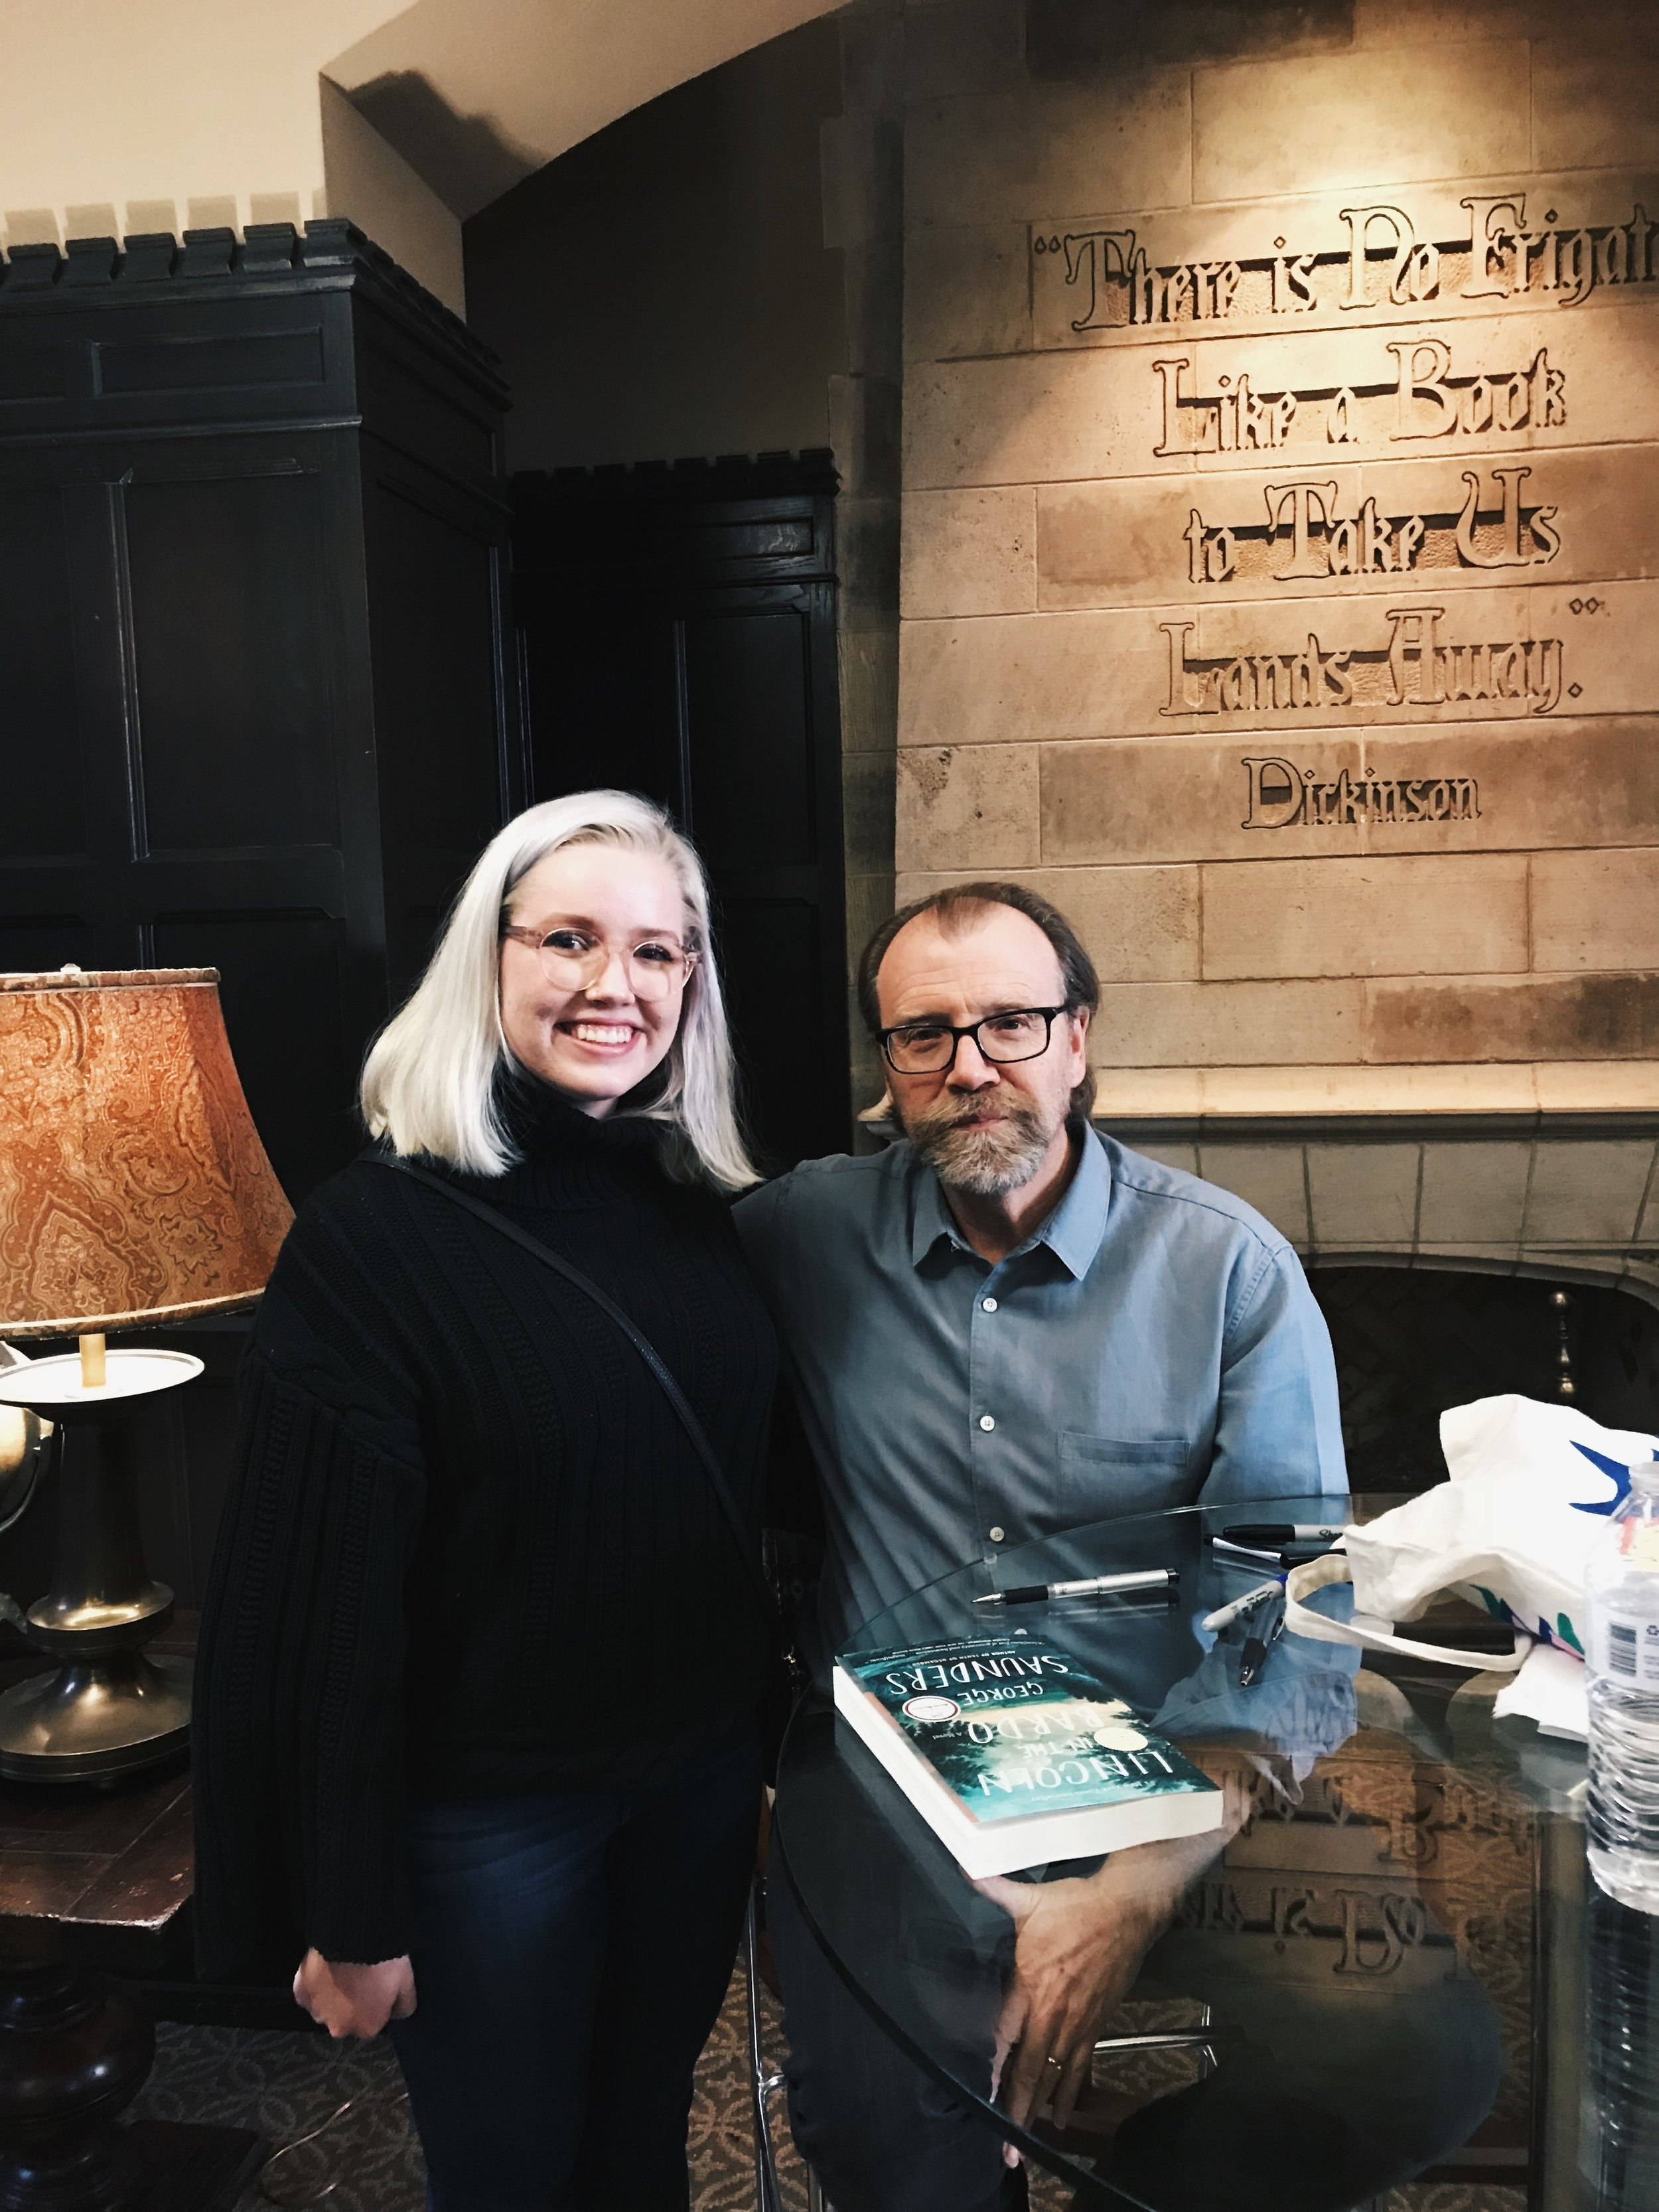 got to meet and chat with George Saunders when he visited campus